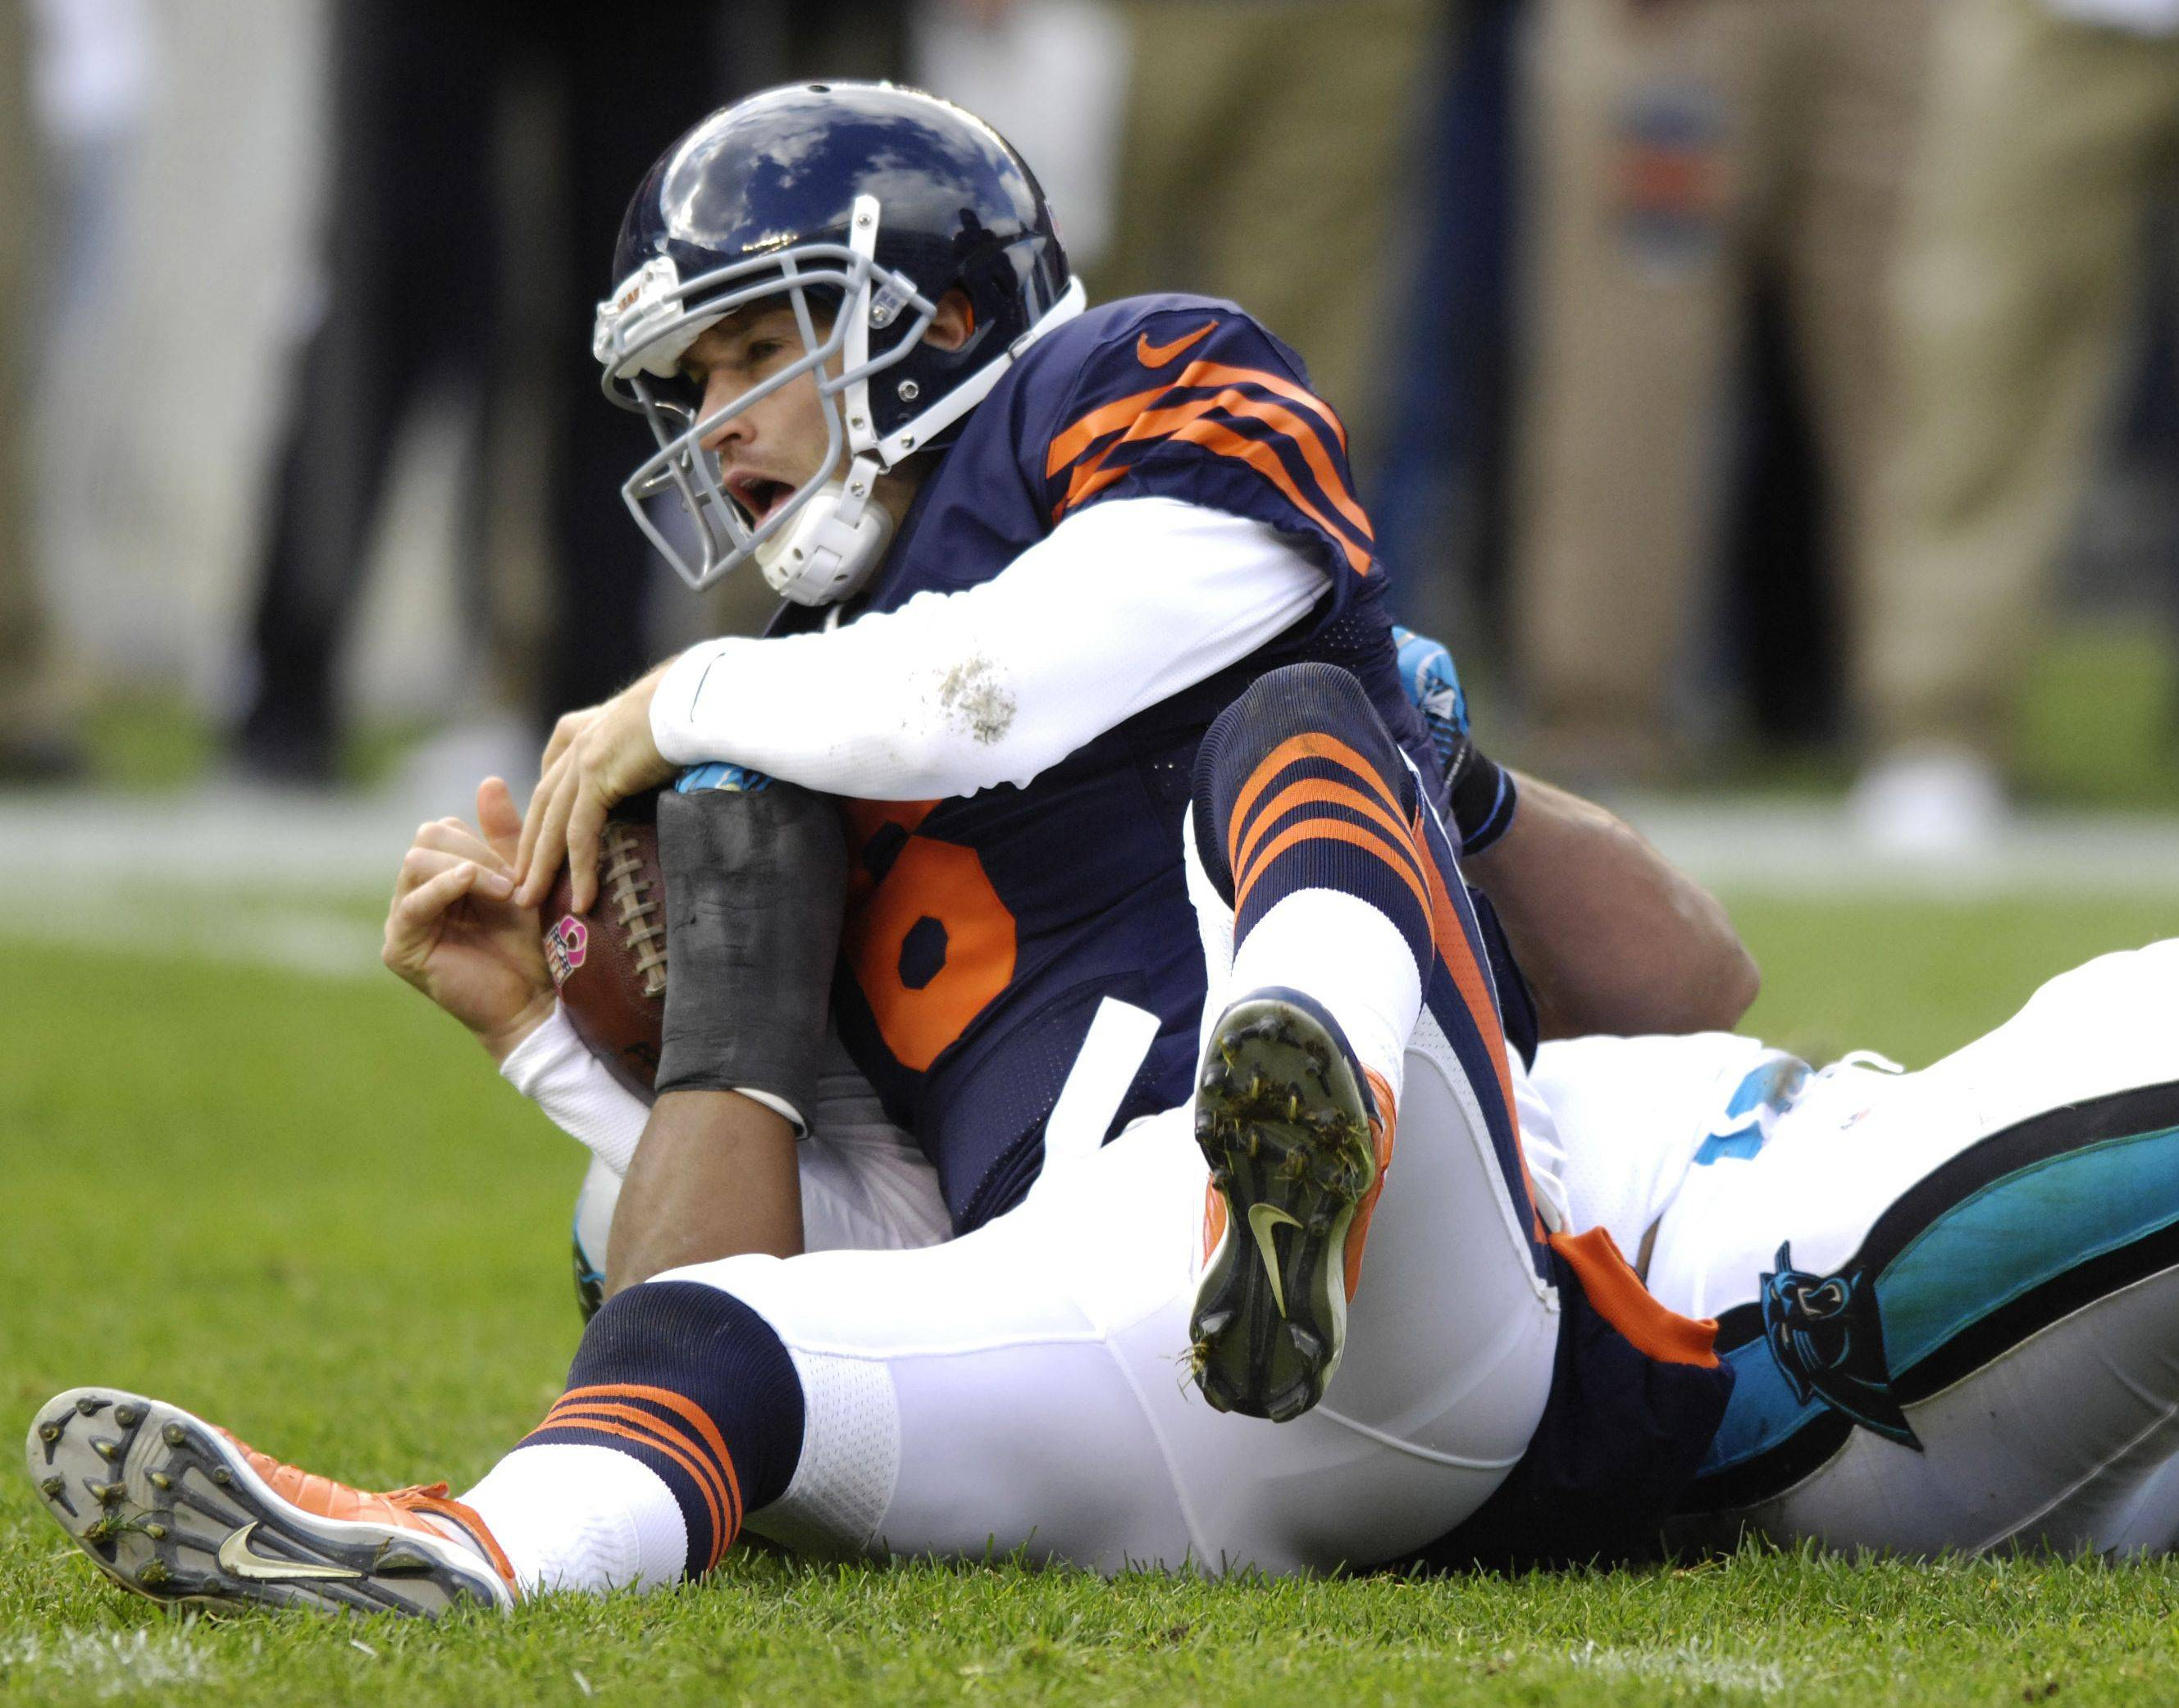 Jay Cutler, after getting sacked six times in the first half Sunday, was able to help the offense make the necessary adjustments in time to escape with a victory.